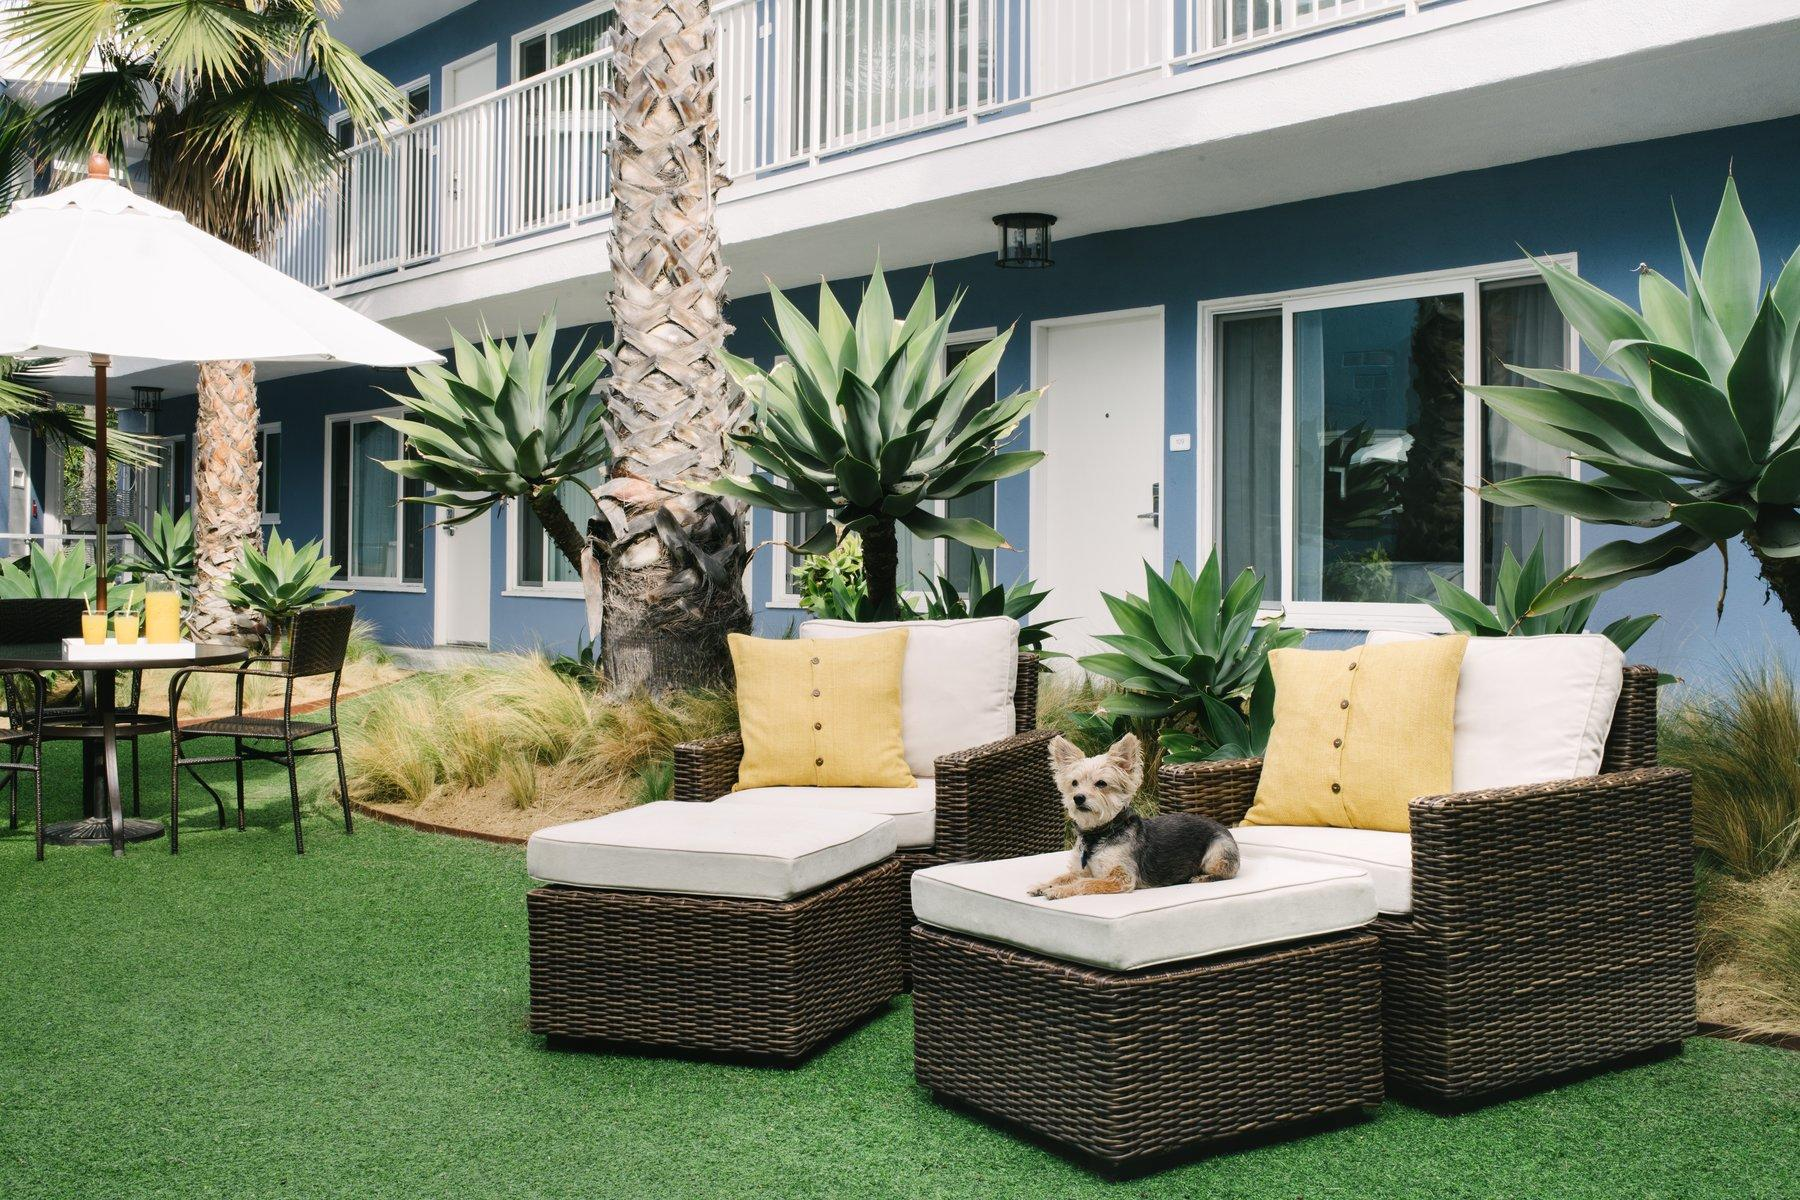 Grassy courtyard with plush seating and a small dog